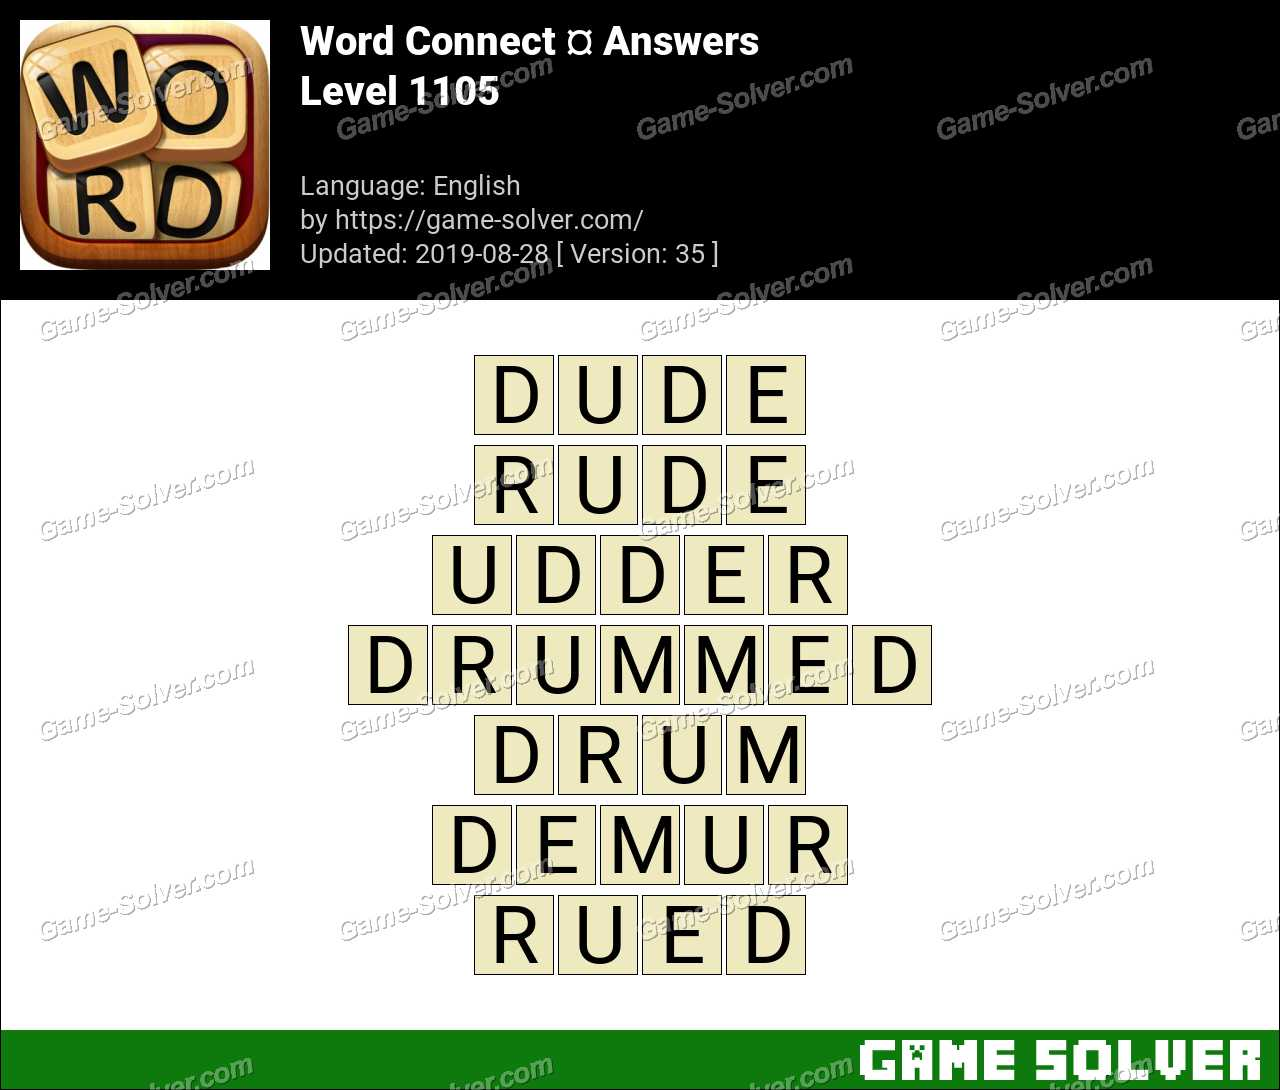 Word Connect Level 1105 Answers